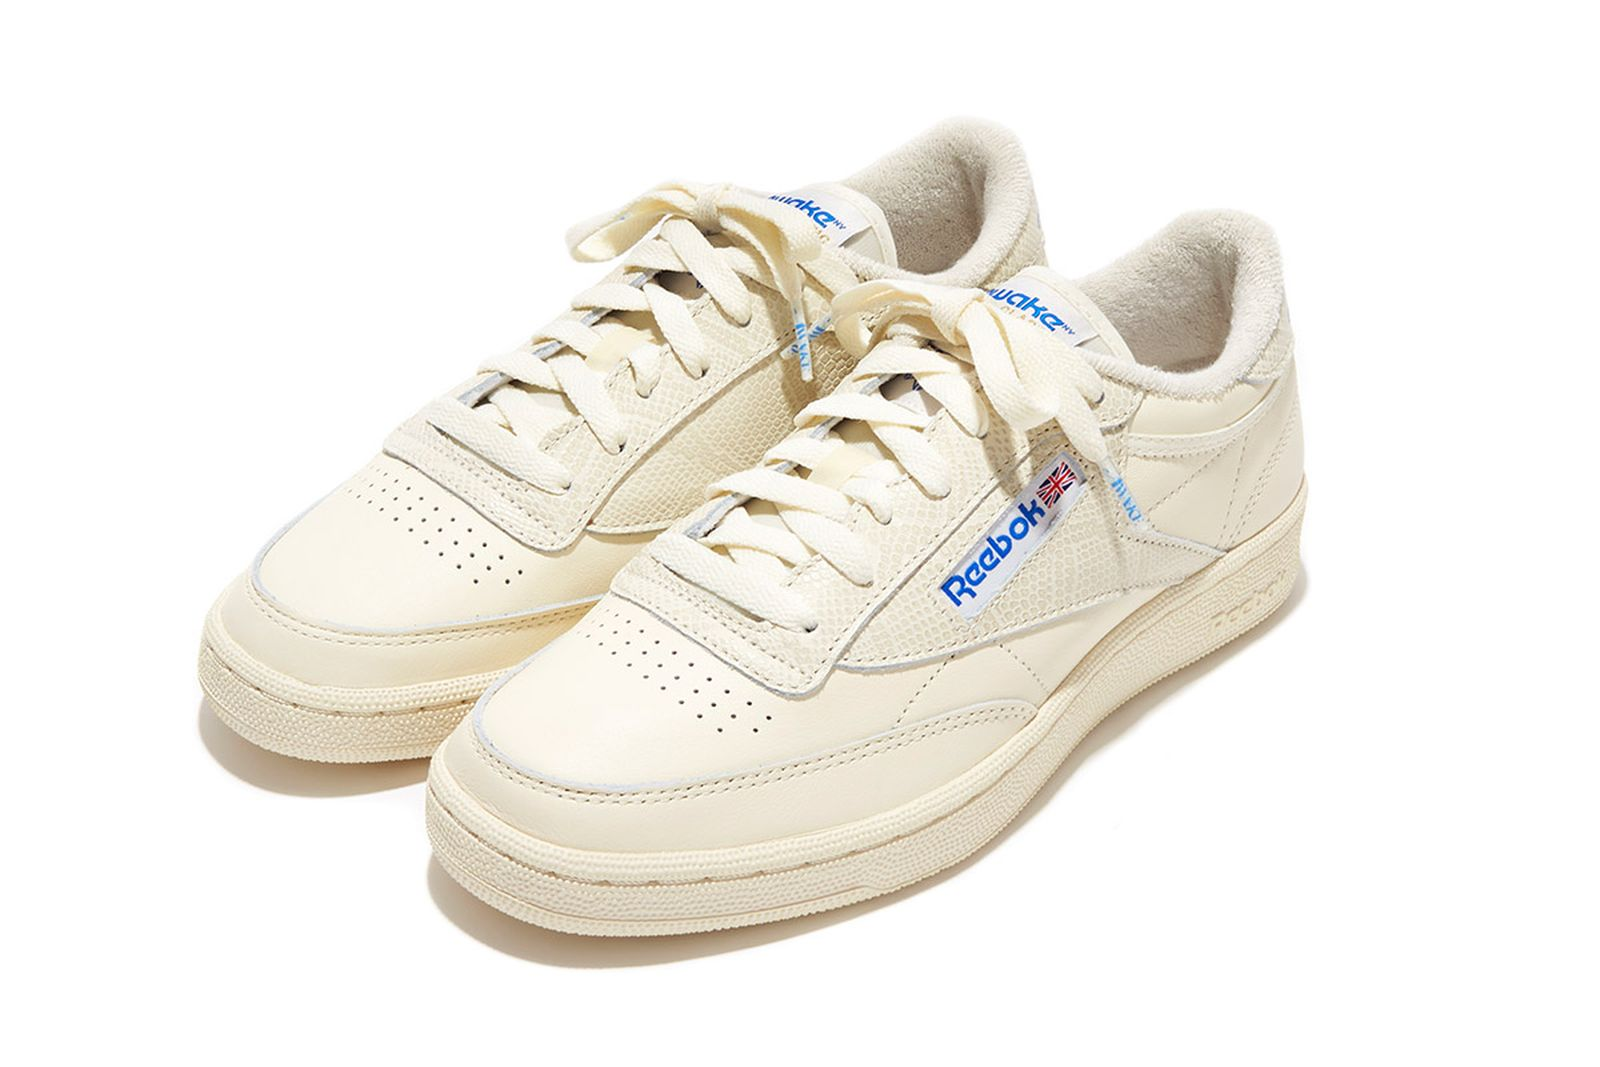 awake-ny-reebok-club-c-classic-leather-release-date-price-02